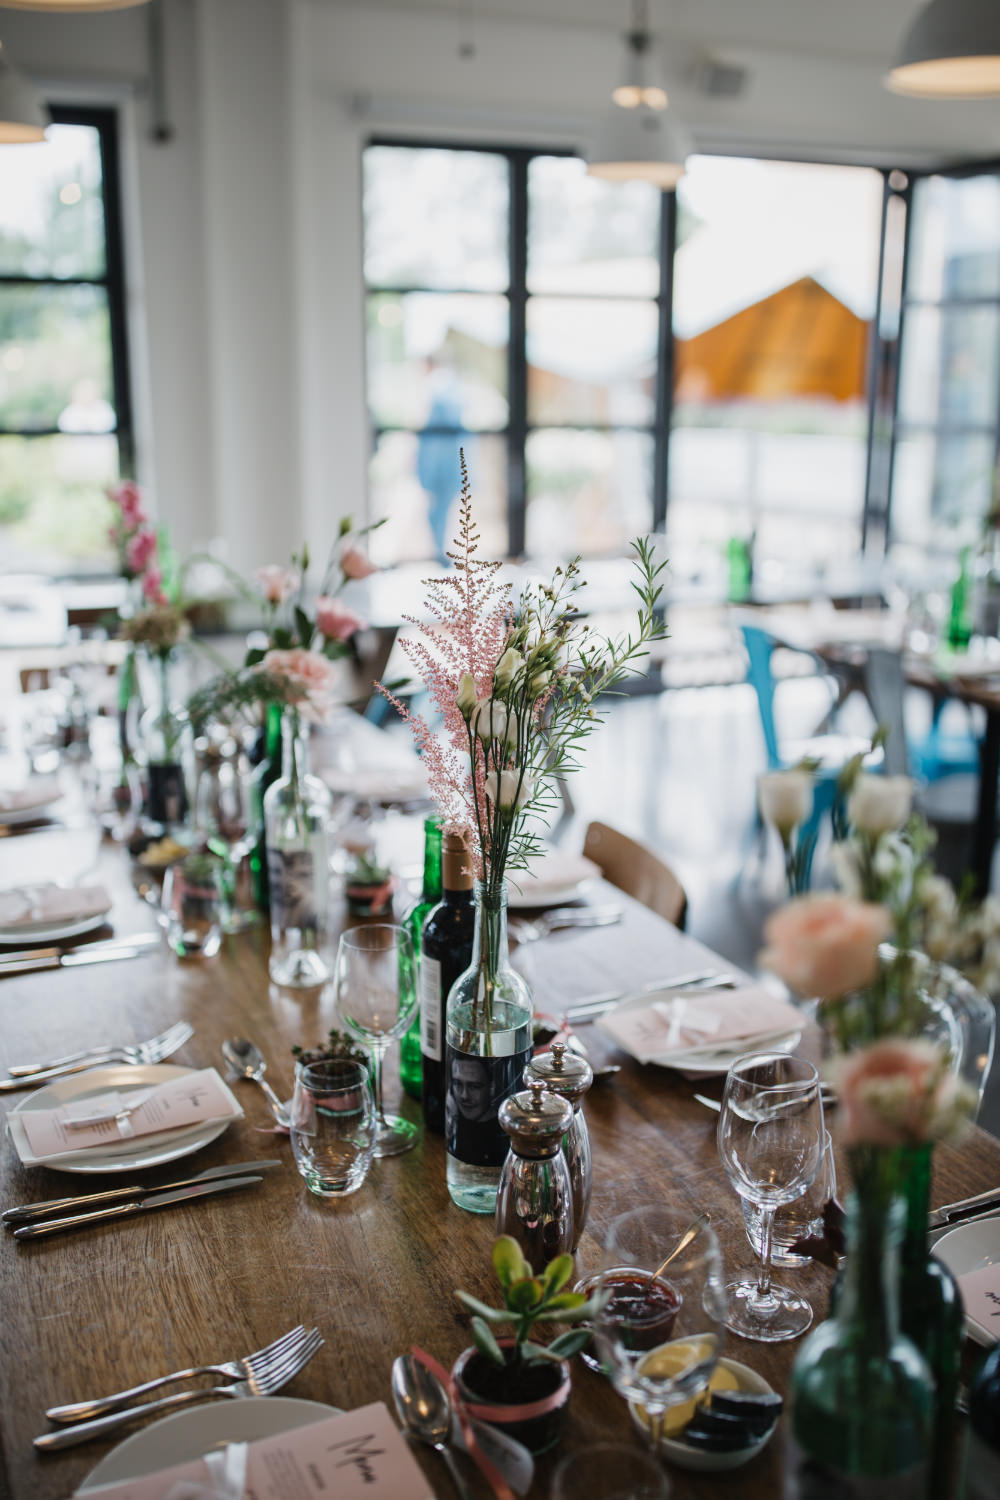 Wooden Table Bottle Flowers Pastel Decor Field Kitchen Wedding Siobhan Amy Photography